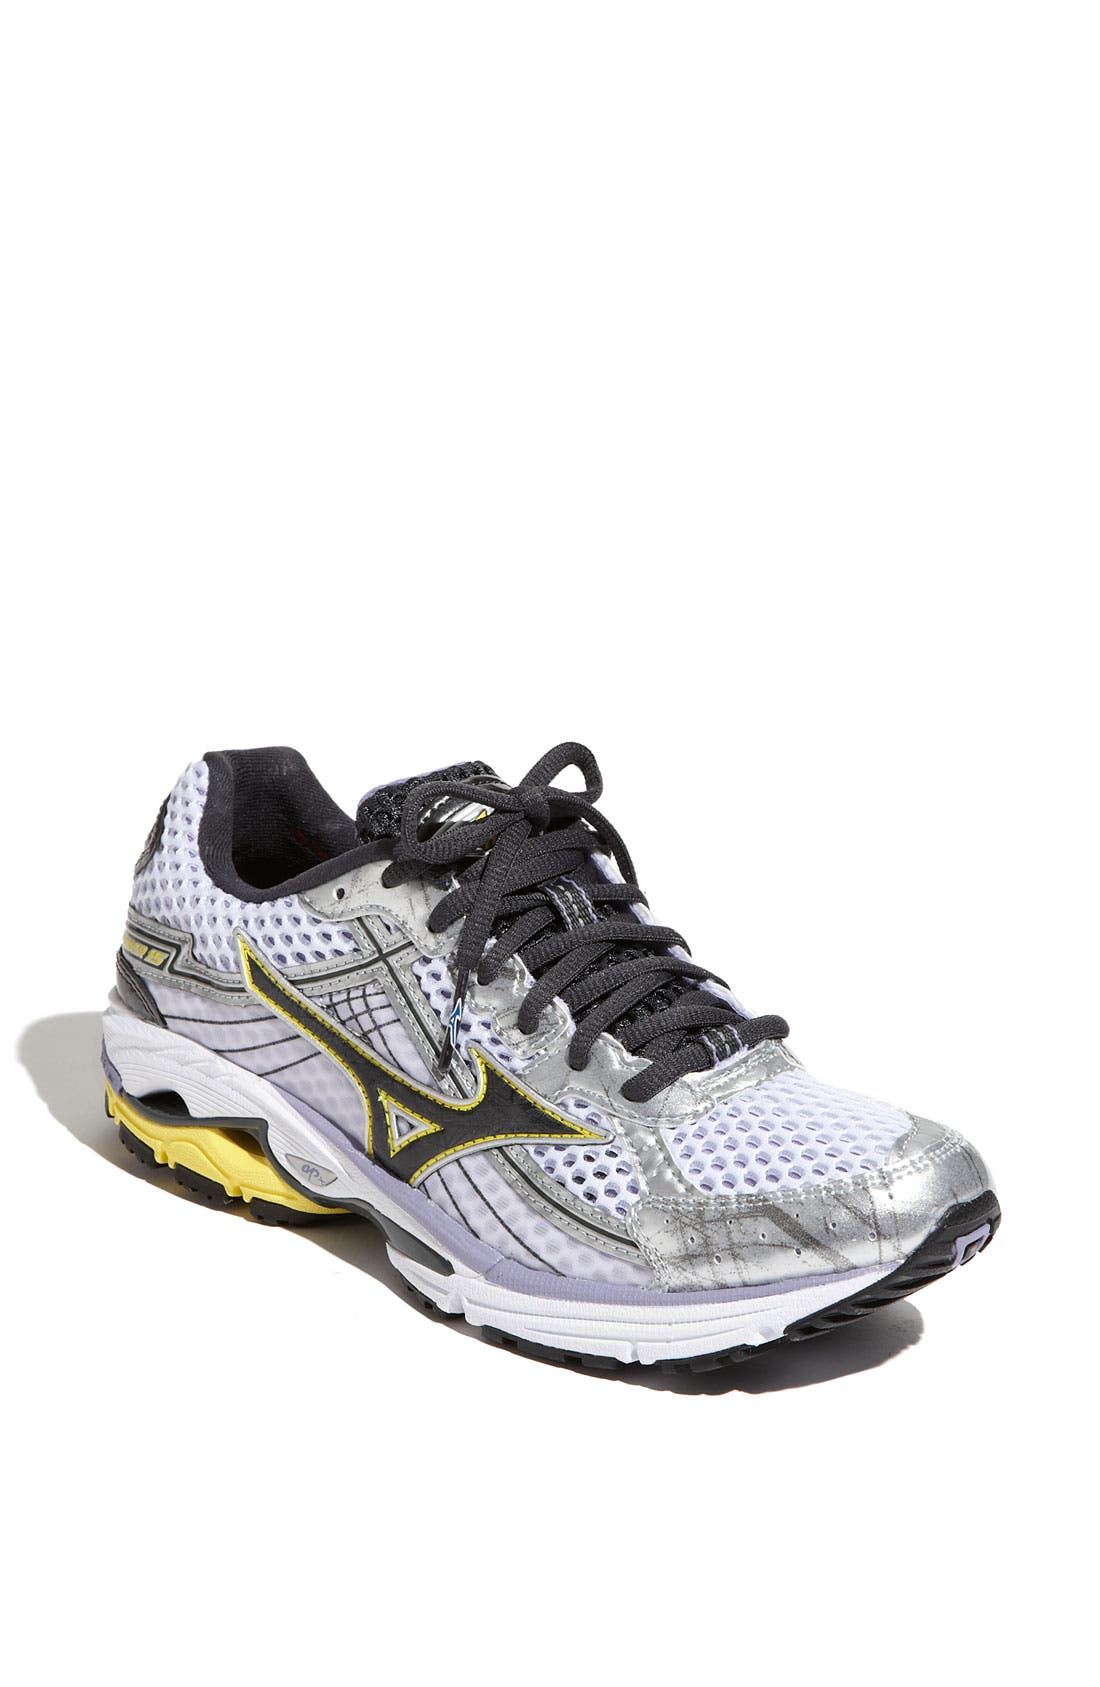 mizuno shoes true to size pants rompers